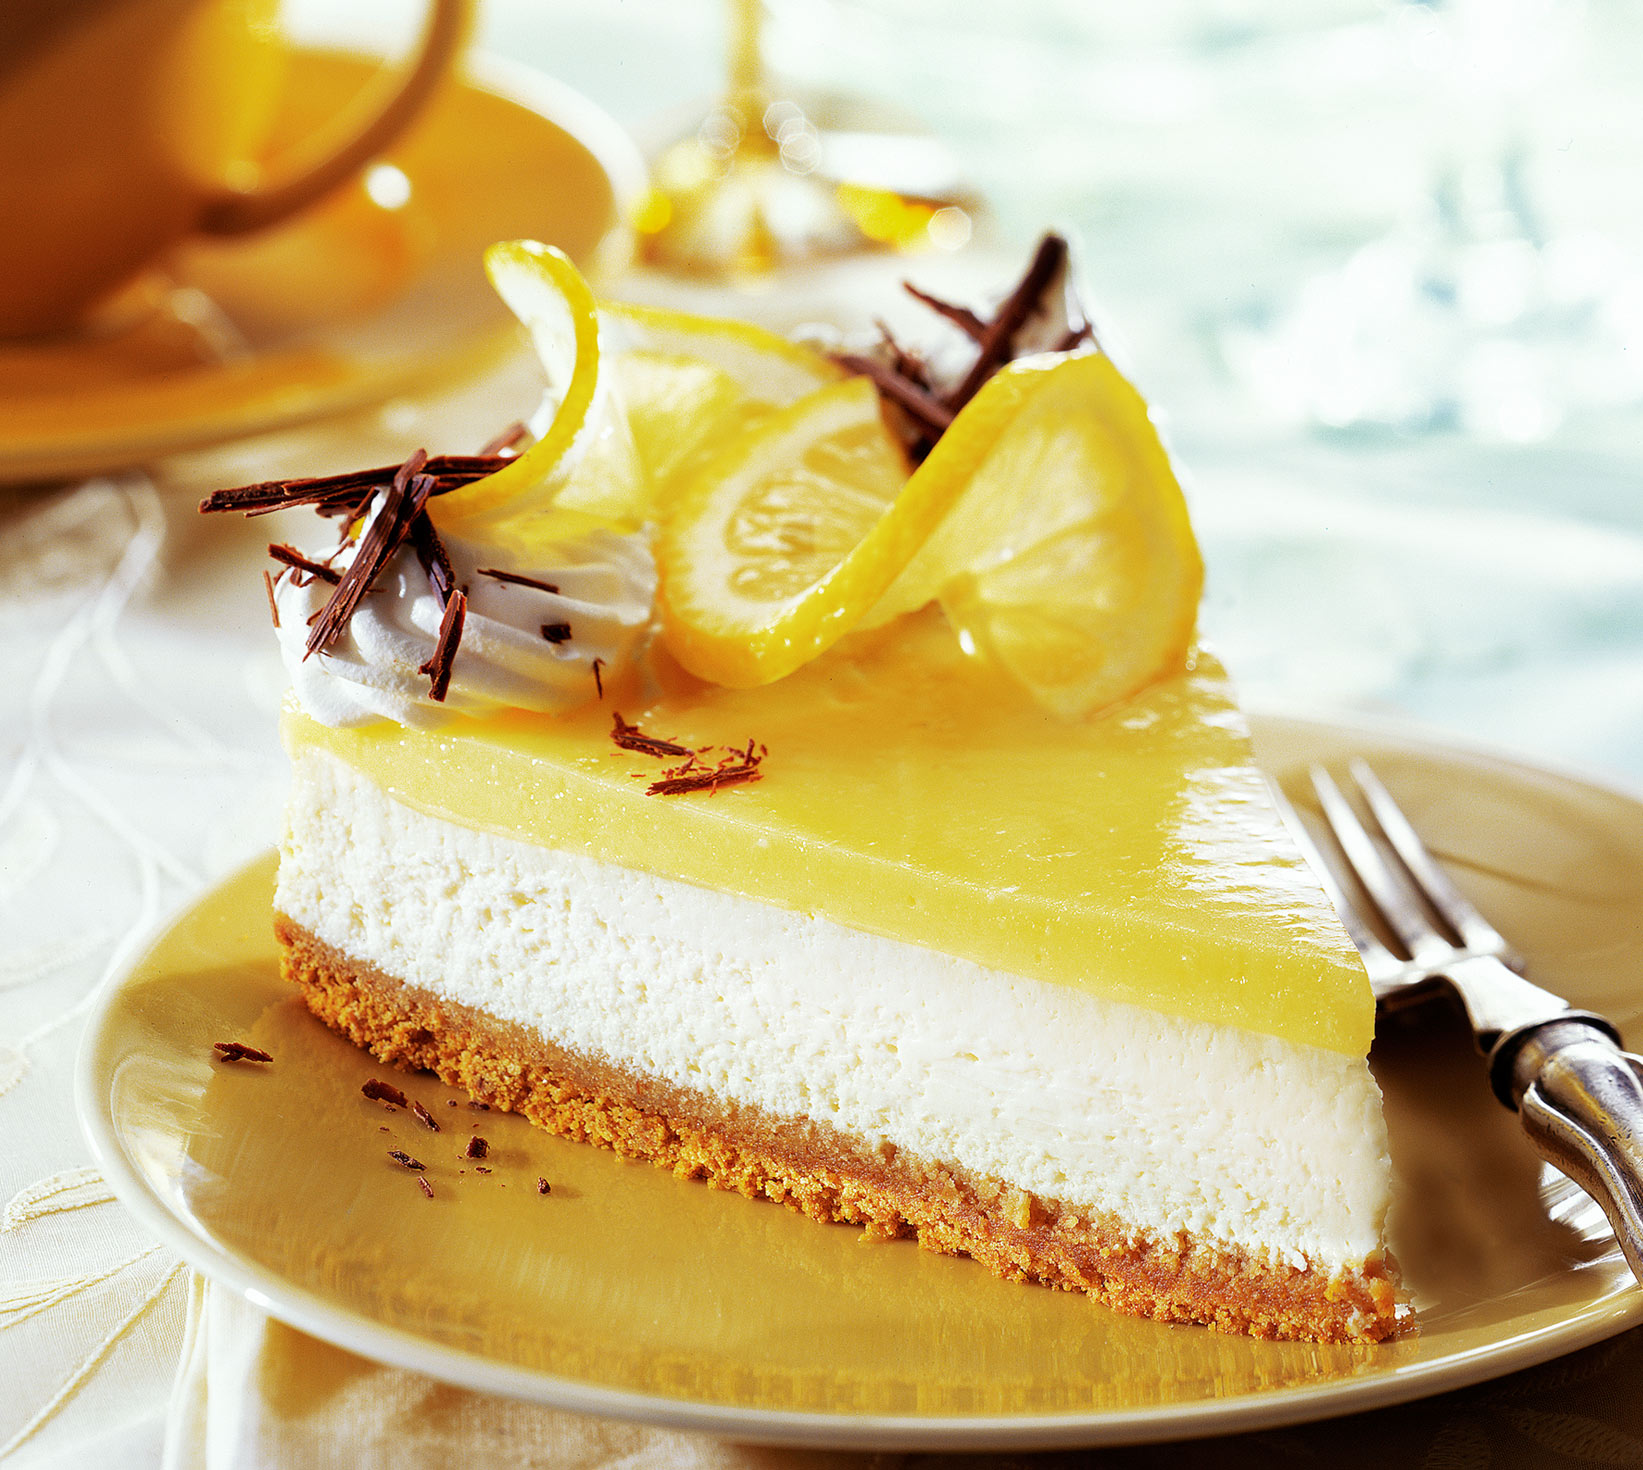 Glasshouse Assignment - David Bishop - Food Photography - Lemon Pie